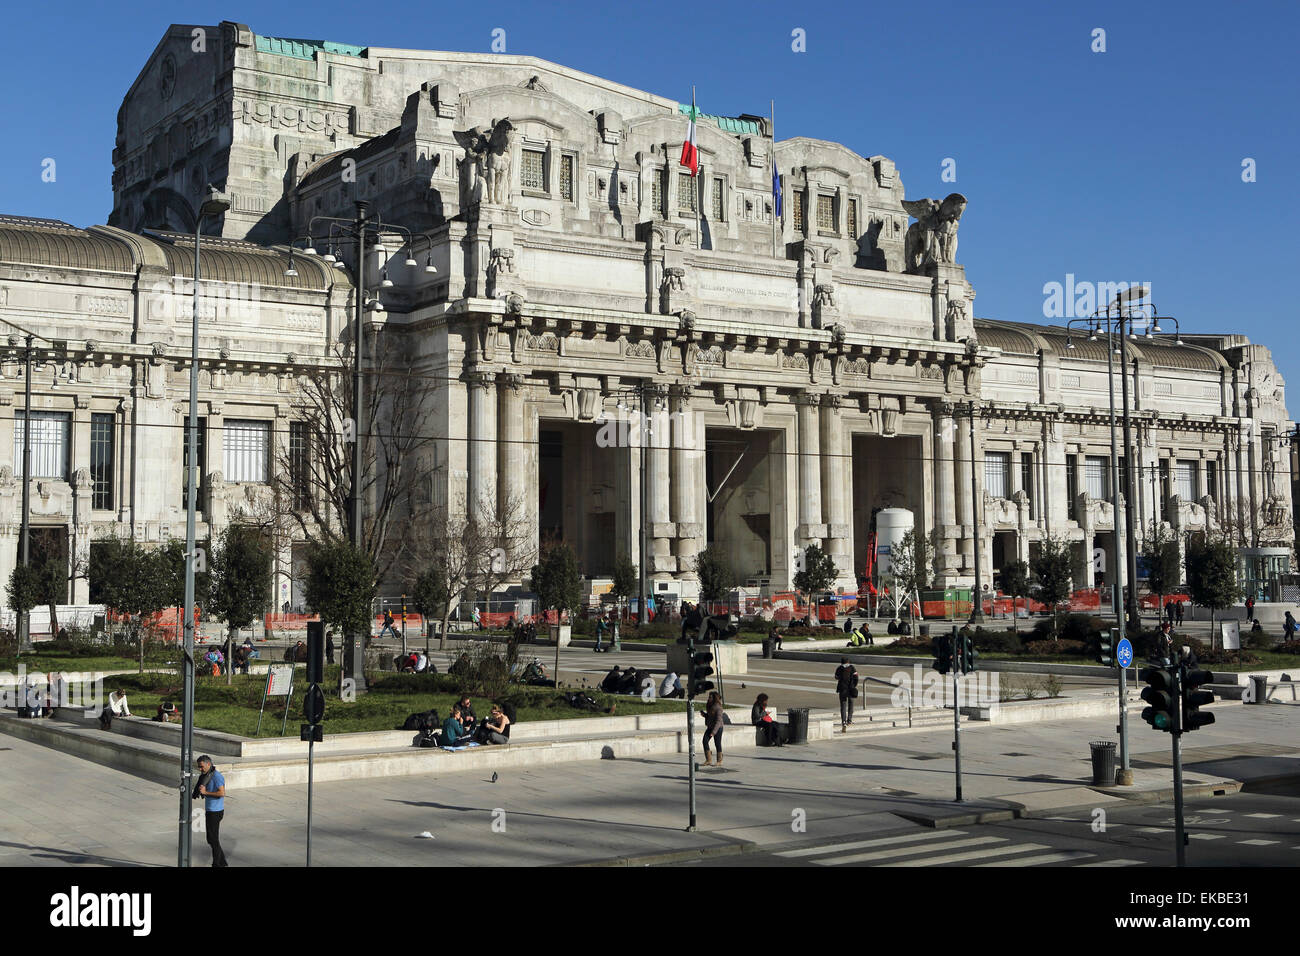 The facade of Milan central railway station (Milano Centrale), designed by Ulisse Stacchini, Milan, Lombardy, Italy - Stock Image